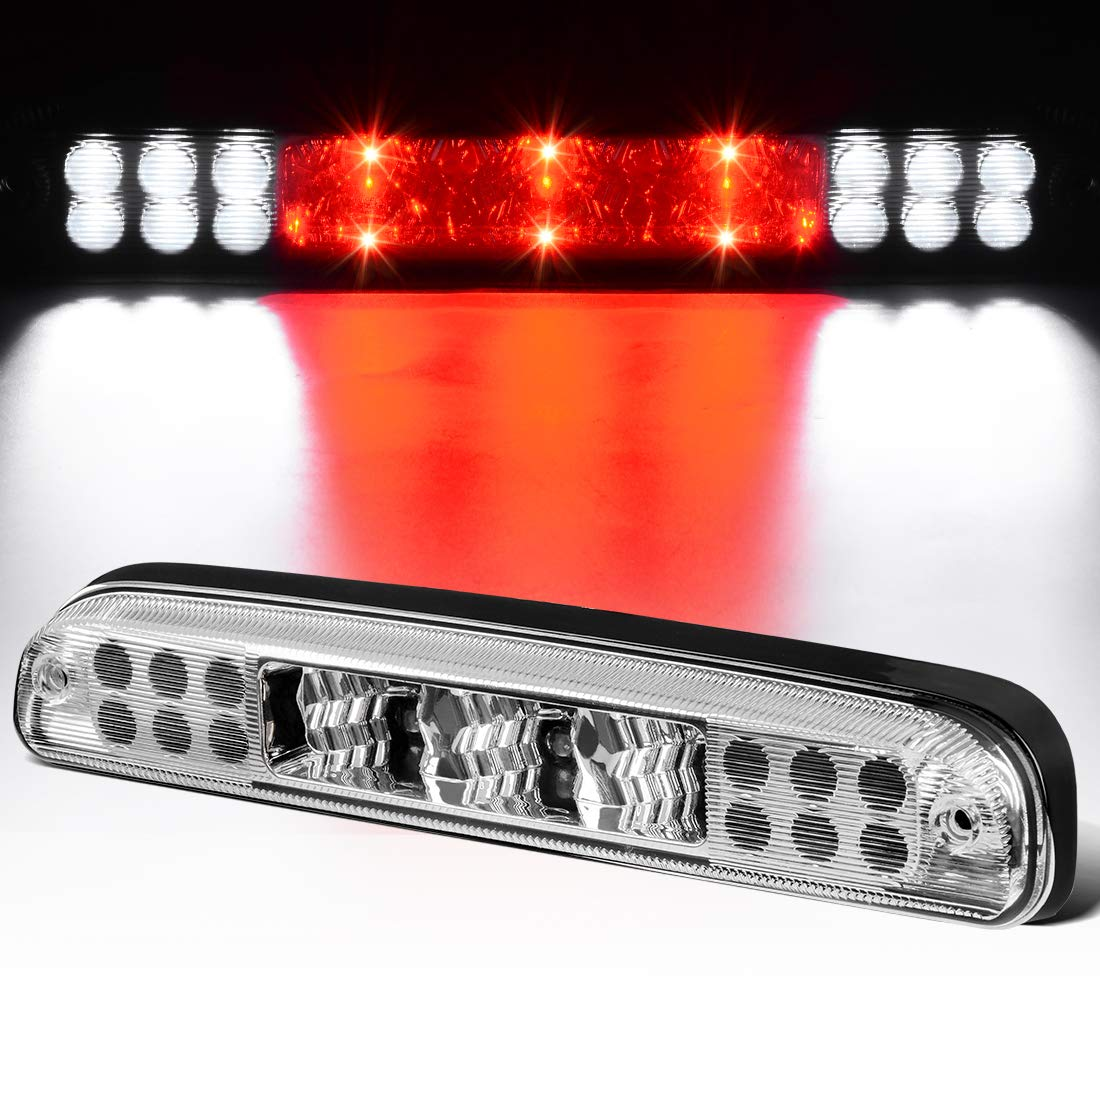 LED 3rd Brake Light For 1999-2016 F250 F350 F-450 F-550 Ford Super Duty/1993-2011 Ranger/2001-2005 Ford Explorer/1993-2010 Mazda B-Series High Mount Trailer Cargo Lamp (Smoke) DWVO